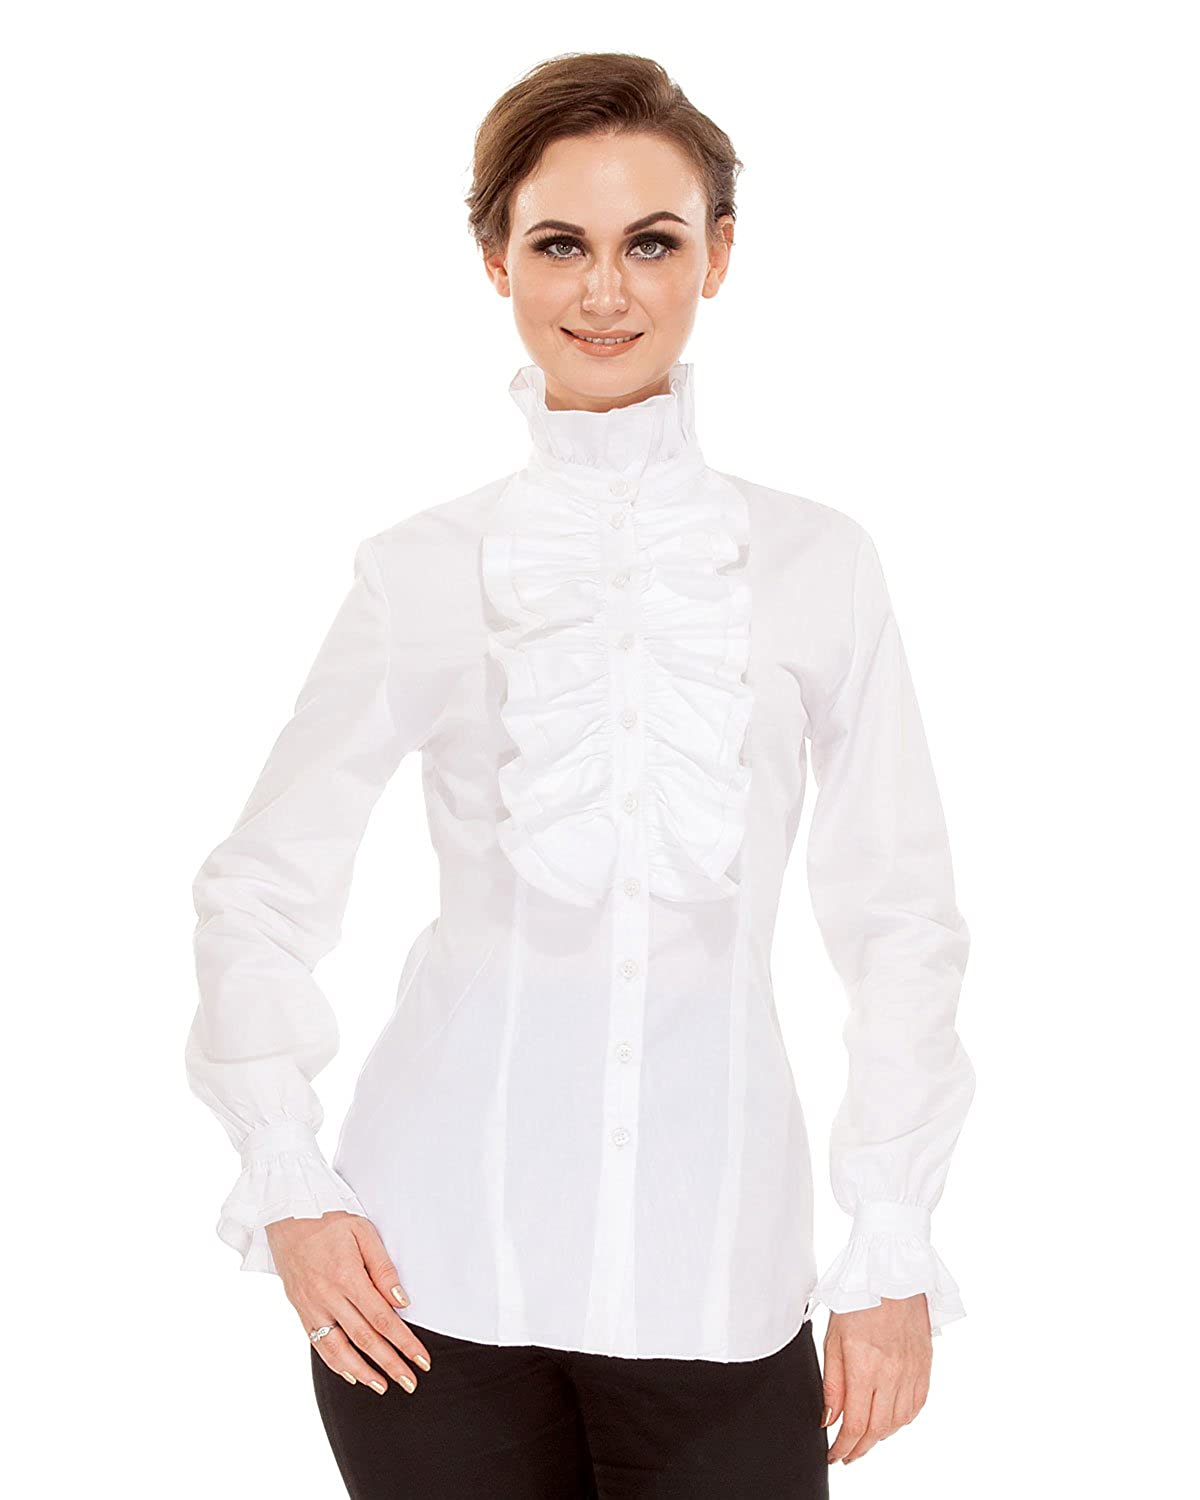 1930s Style Blouses, Shirts, Tops | Vintage Blouses ThePirateDressing Steampunk Gothic Victorian Cosplay Costume Womens Stand-up Collar 100% Cotton Blouse Shirt $37.95 AT vintagedancer.com